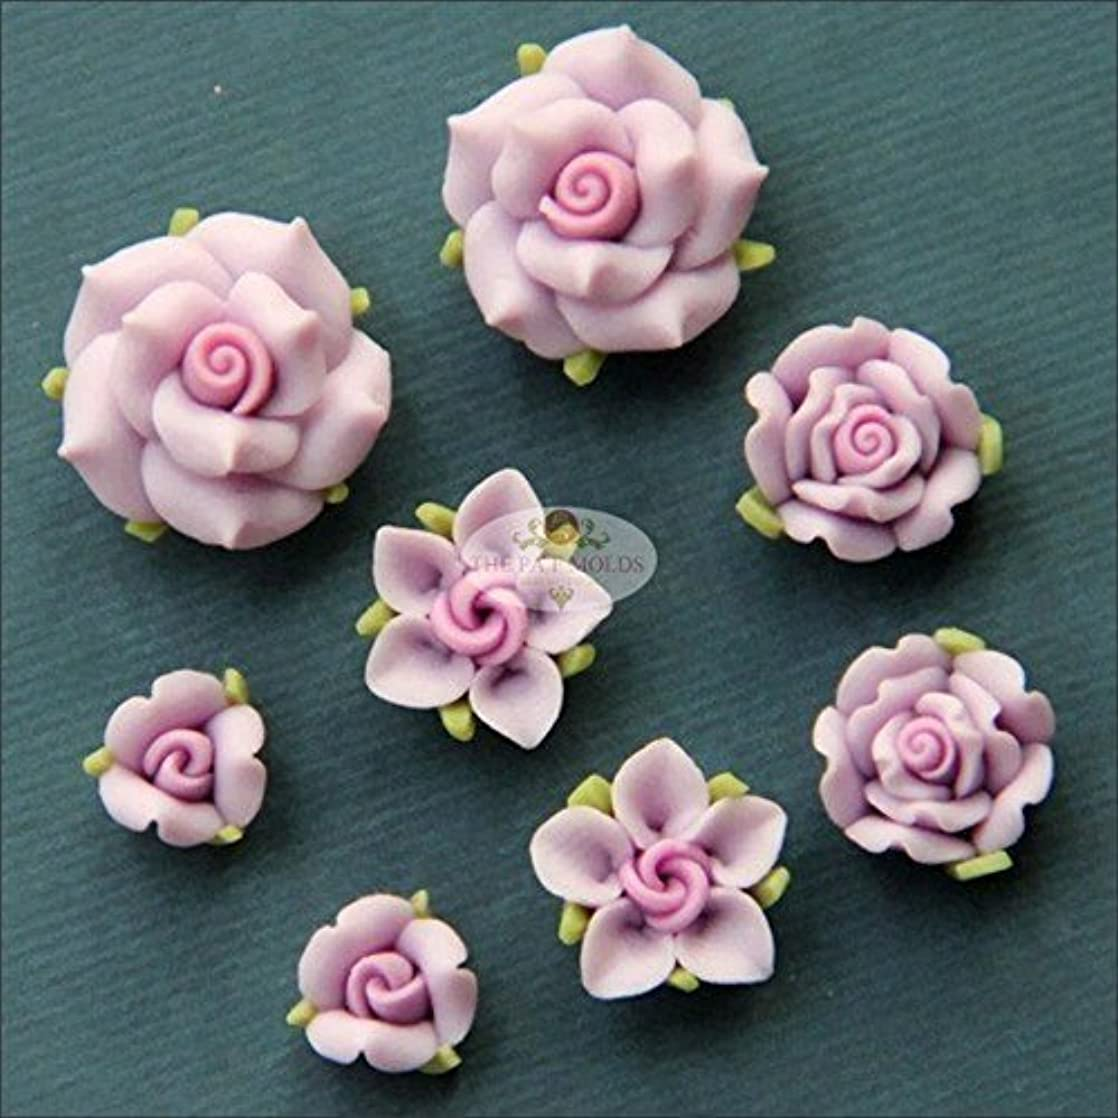 Sugarcraft Molds Polymer Clay Cake Border Mold Soap Molds Resin Candy Chocolate Cake Decorating Tools tiny flower set mold 4656-987 smbbeied57647